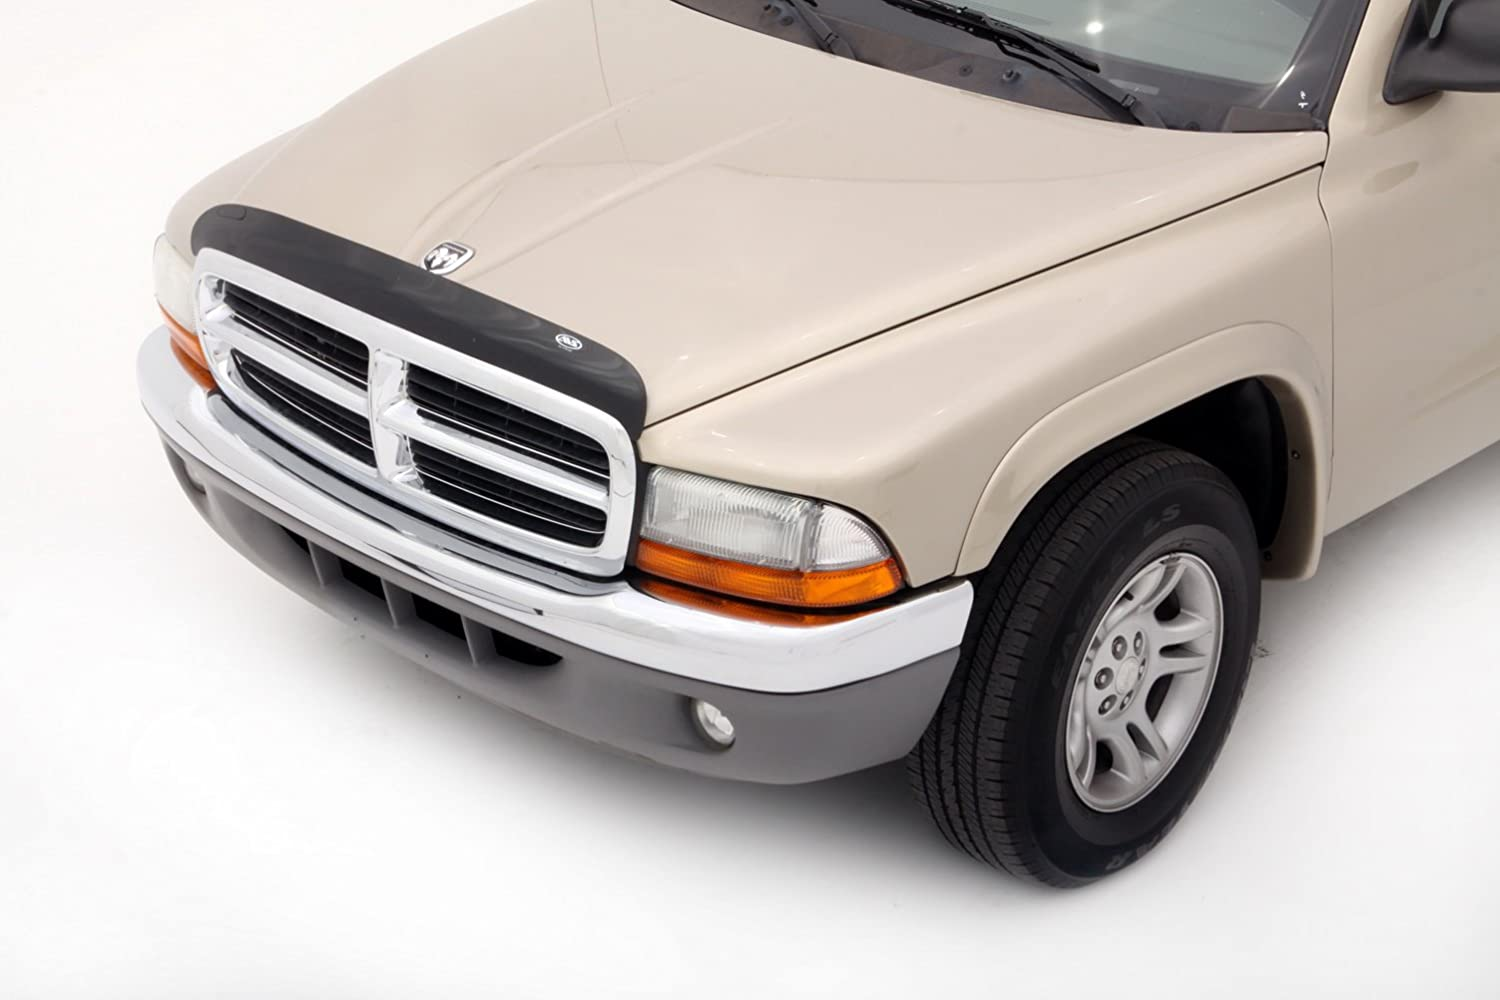 Auto Ventshade 25849 Bugflector II Dark Smoke Hood Shield for 2005-2007 Dodge Dakota